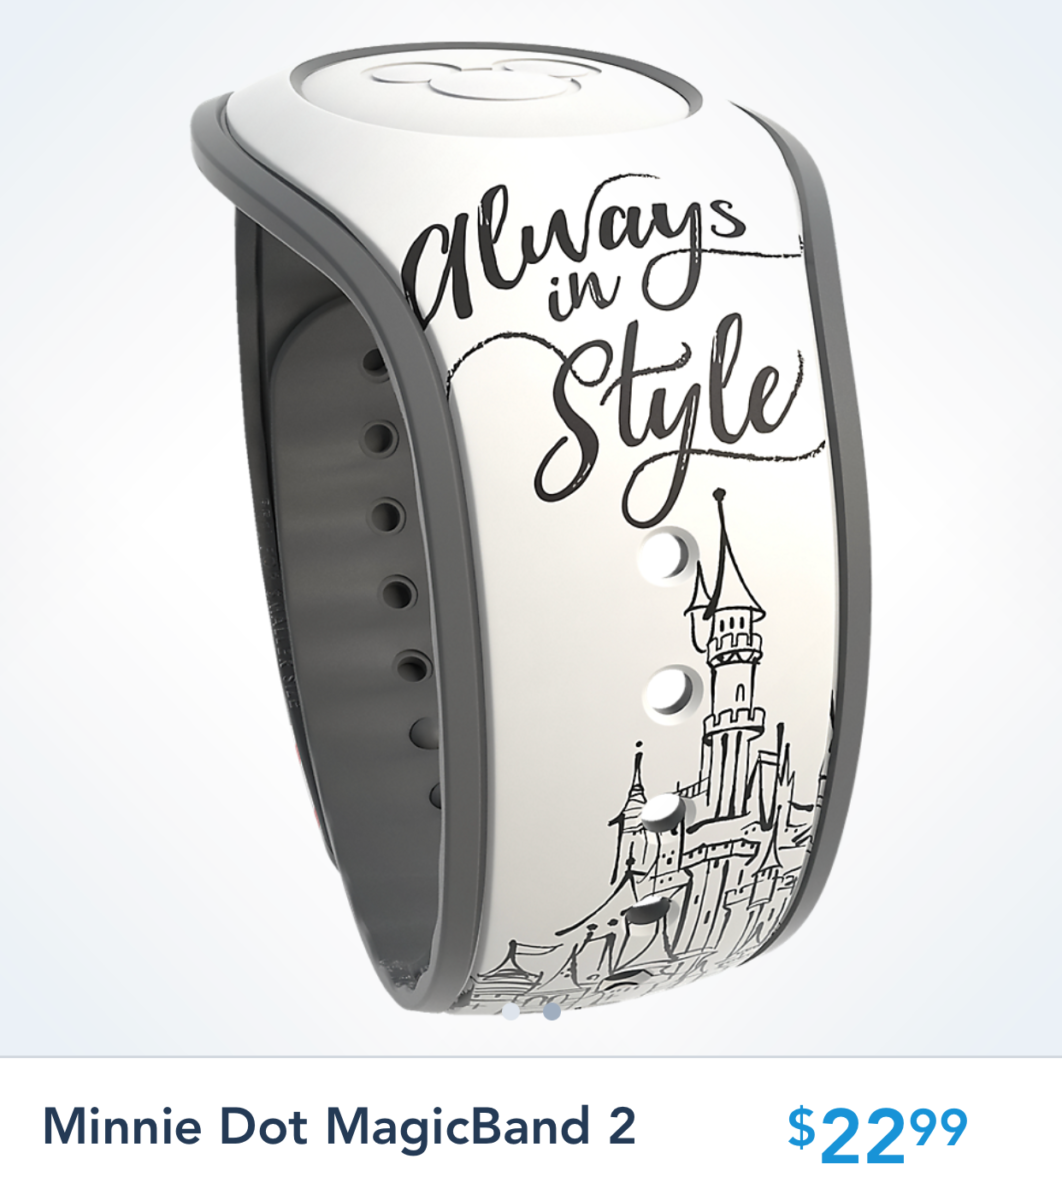 Fashionably Fun MagicBands Courtesy of ShopDisney! #DisneyStyle 3